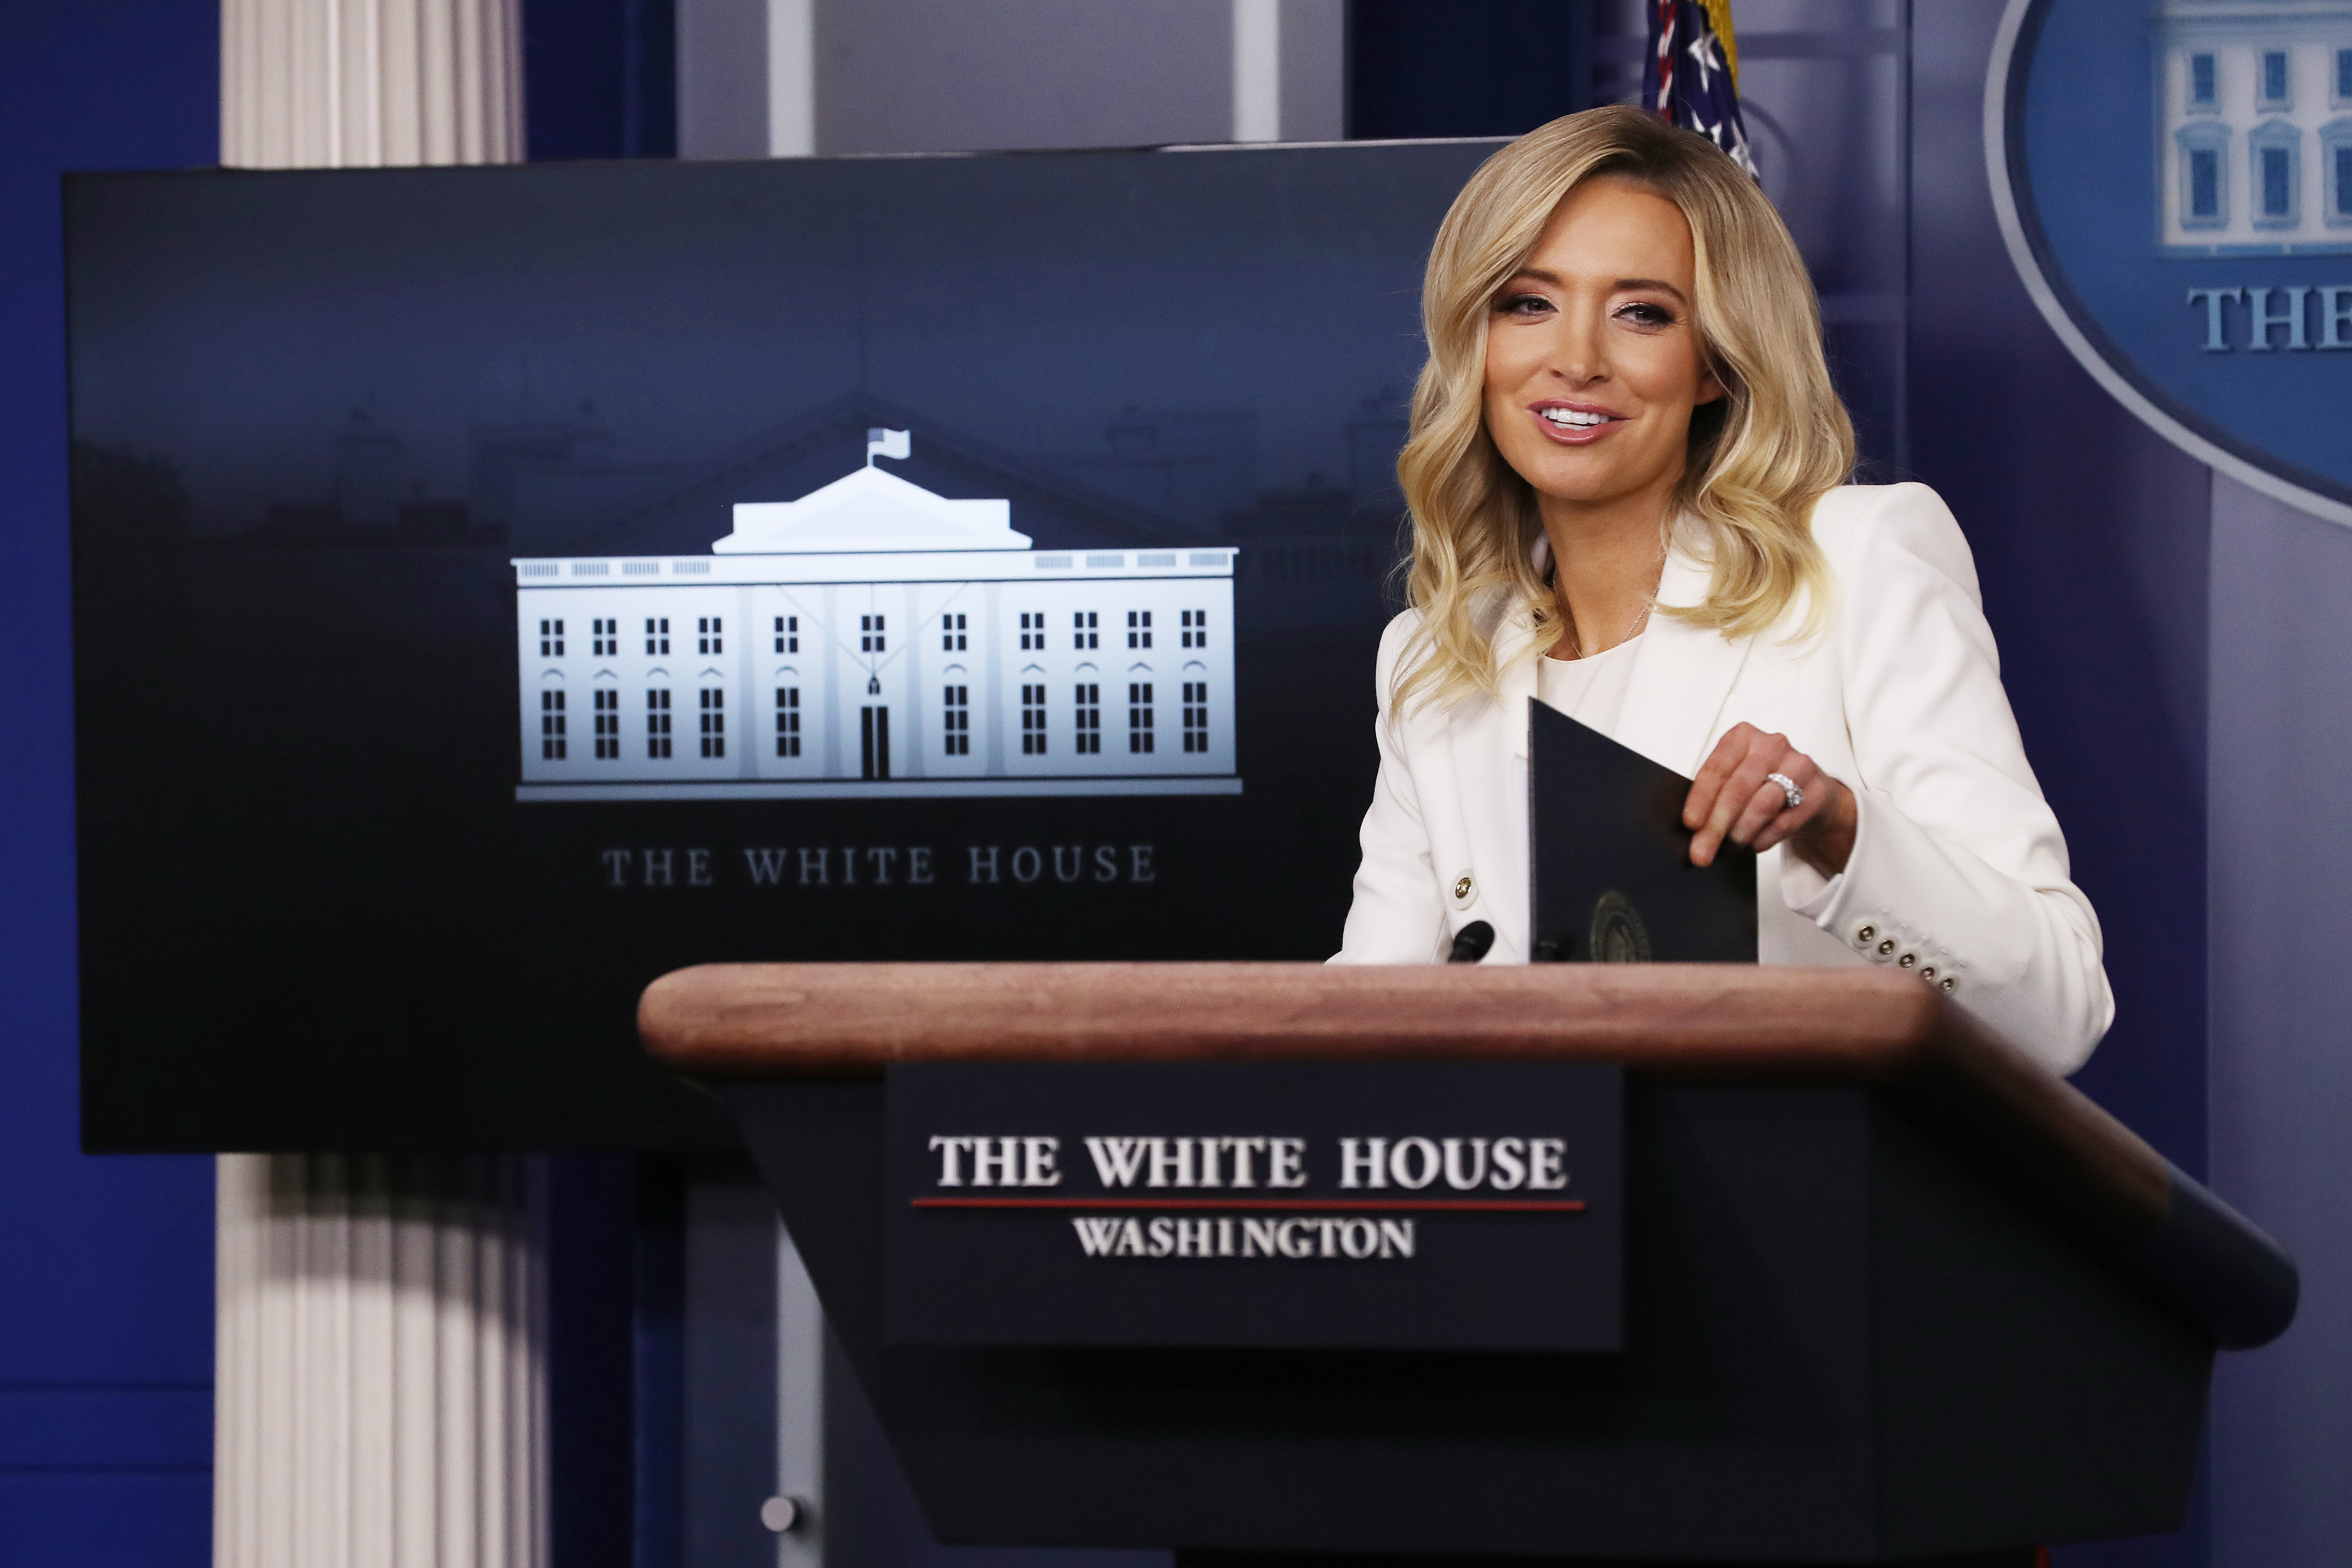 WASHINGTON, DC - MAY 06: White House Press Secretary Kayleigh McEnany conducts a news conference in the Brady Press Briefing Room at the White House May 06, 2020 in Washington, DC. This is McEnany's second formal news conference since becoming President Donald Trump's press secretary last month. (Photo by Chip Somodevilla/Getty Images)